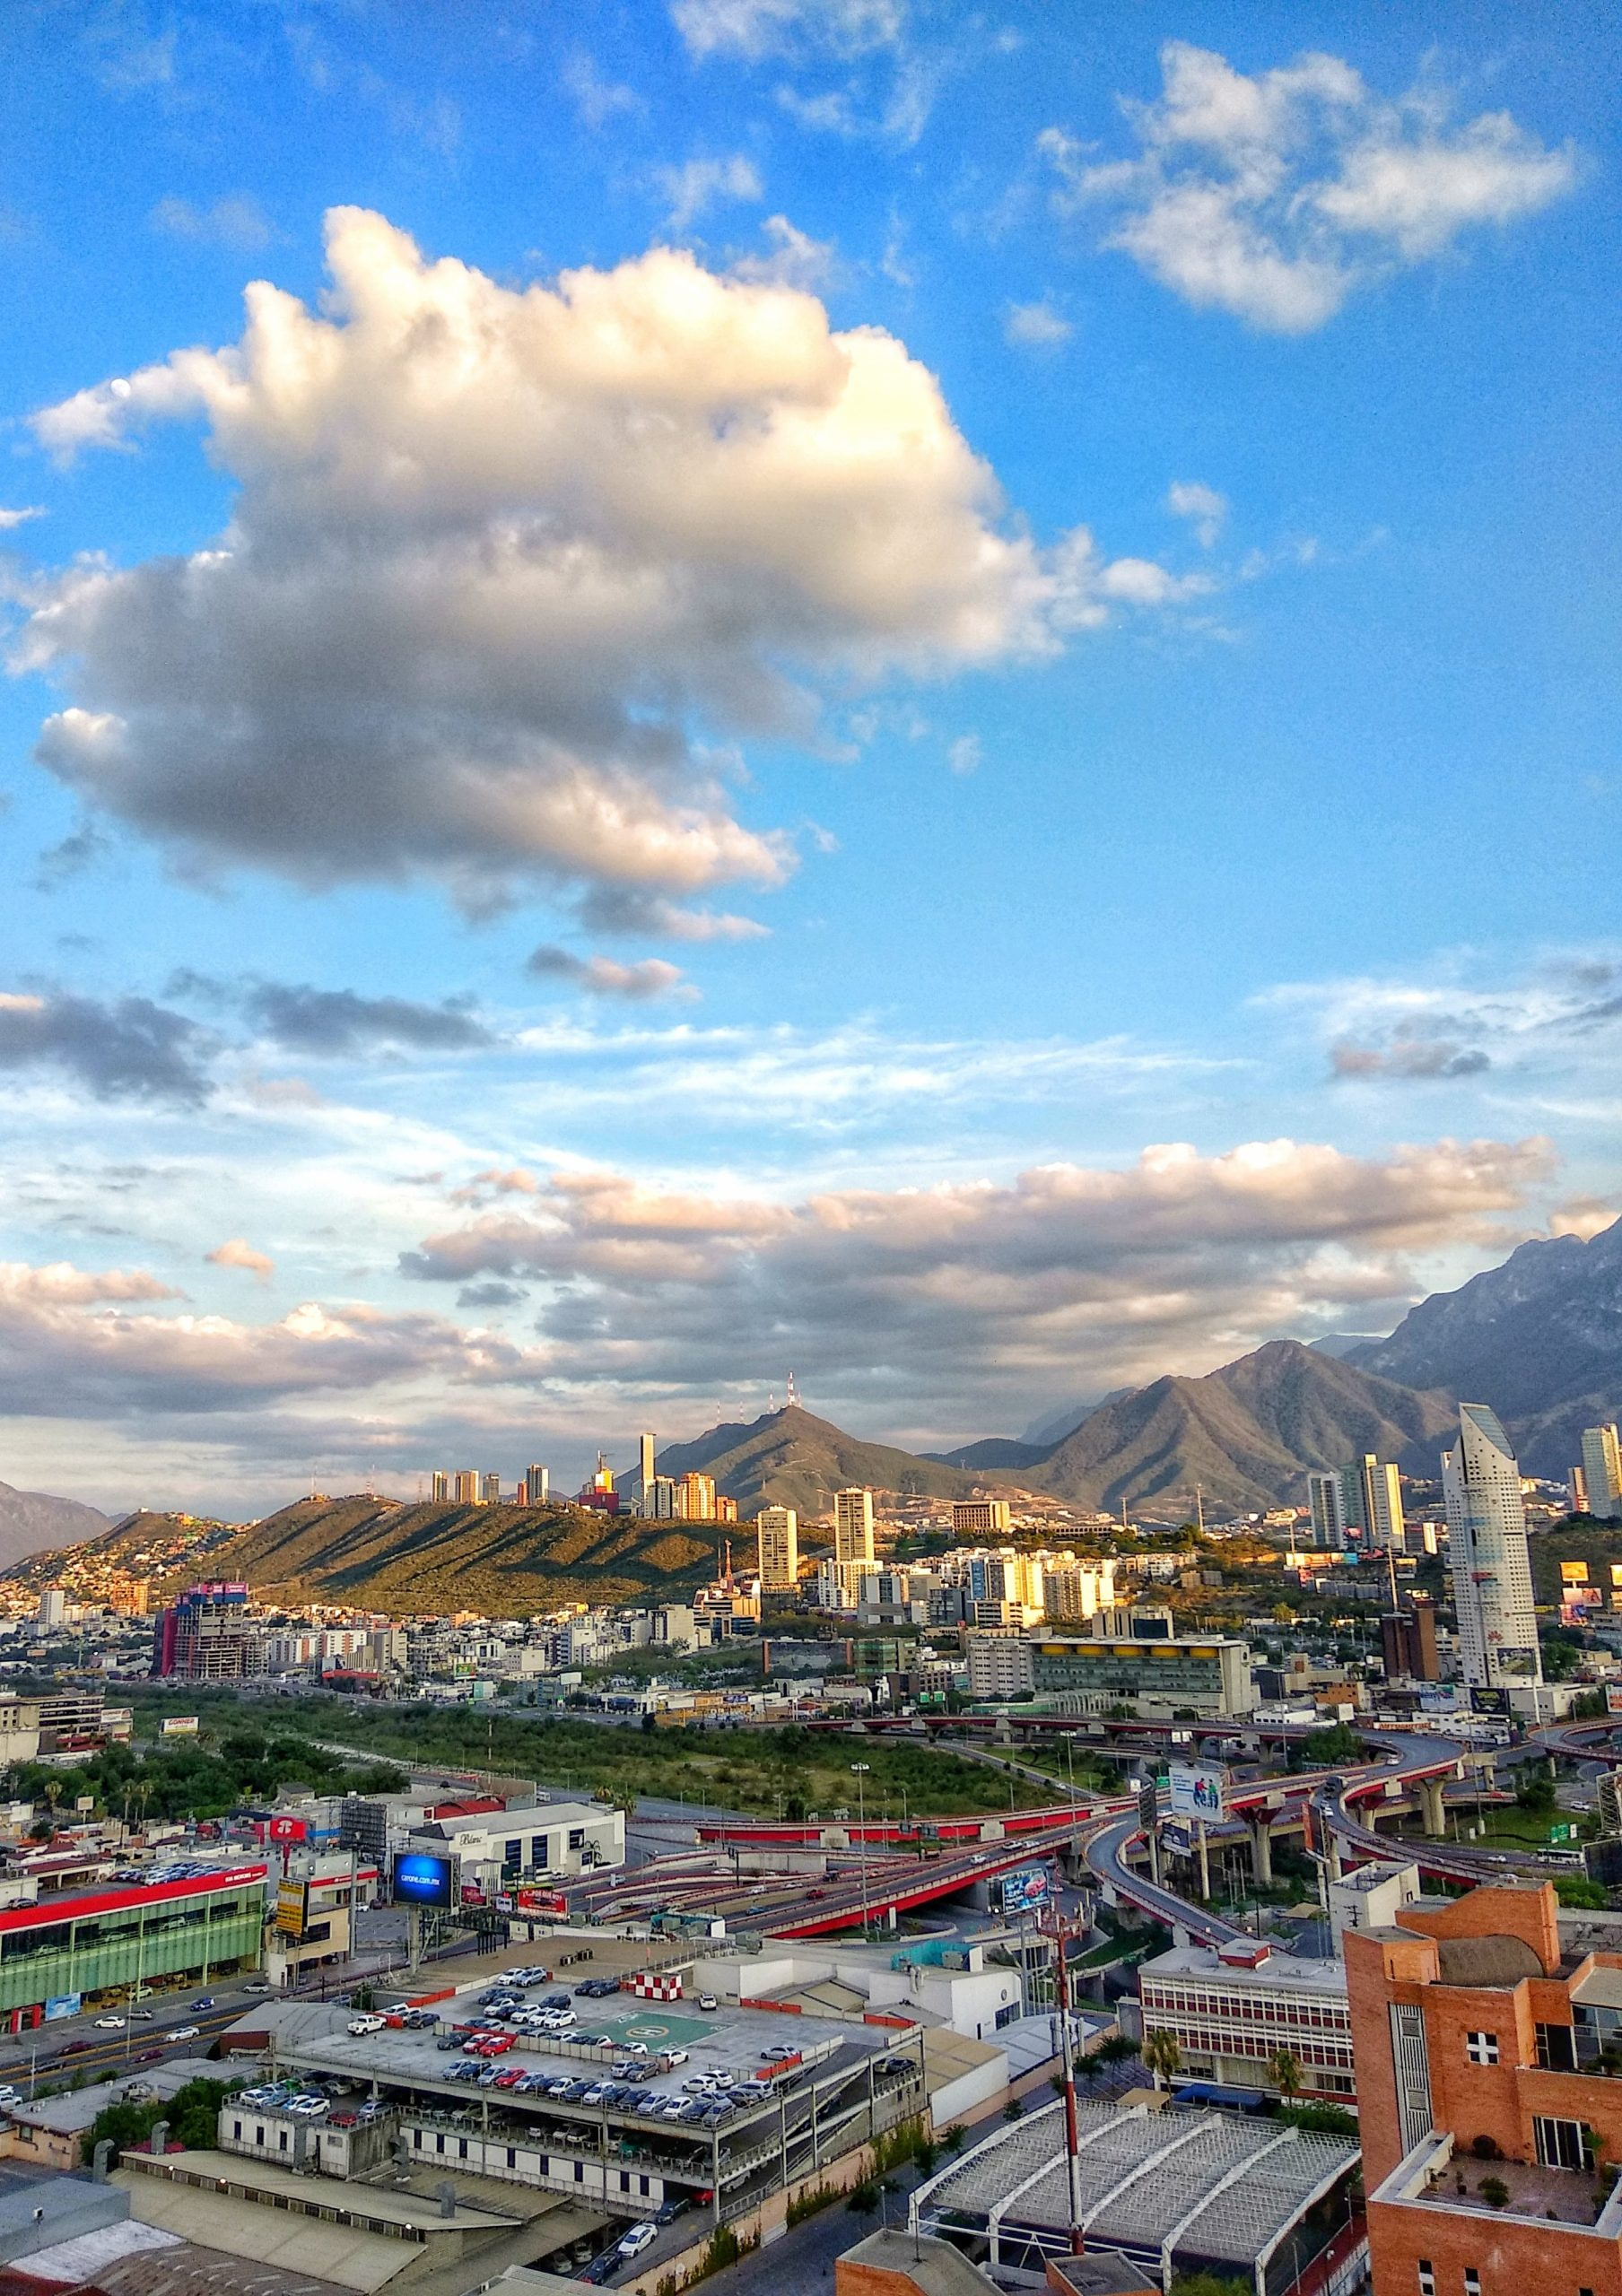 How To Get From Monterrey Airport To City Center - All Possible Ways, cheapest way from Monterrey airport to city center, Monterrey airport to city center